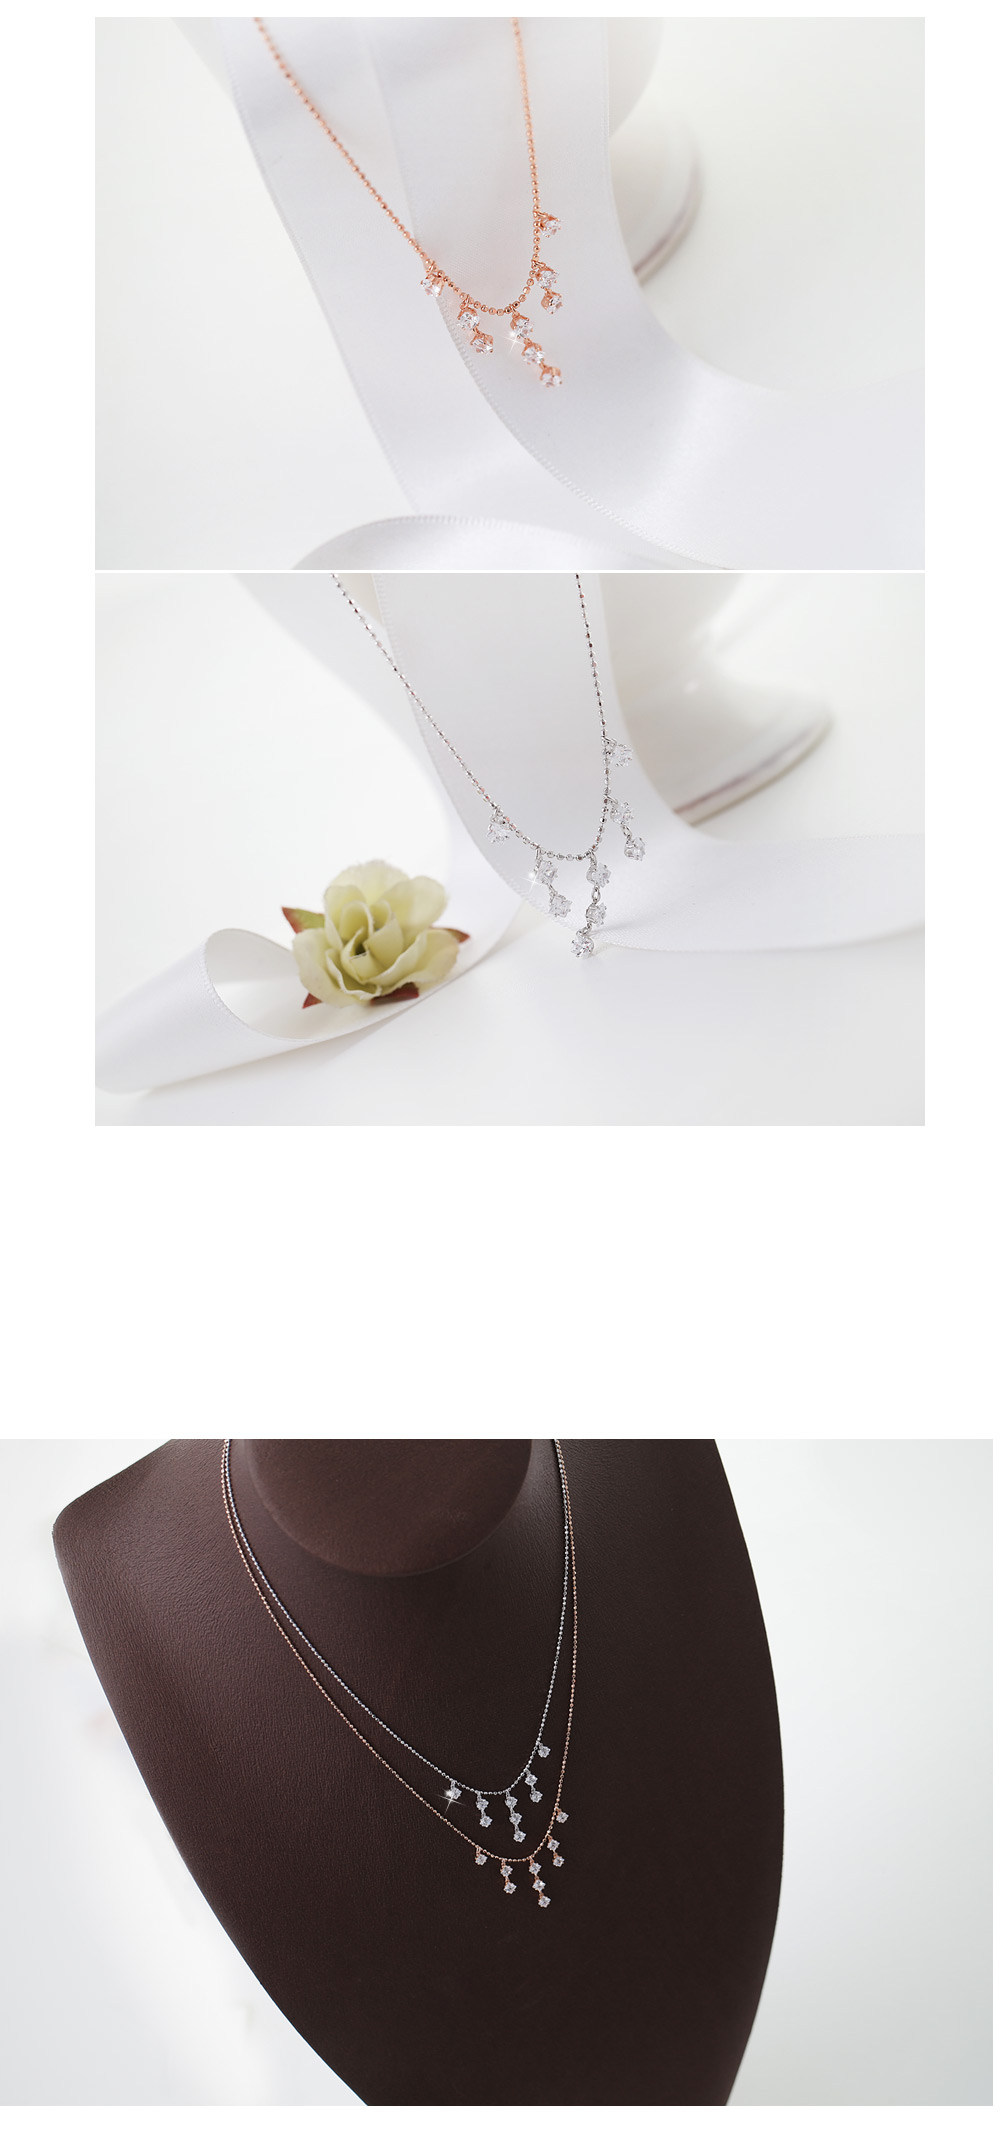 [ 4xtyle ] Davinci Lux Silver Necklace, 2 Colors